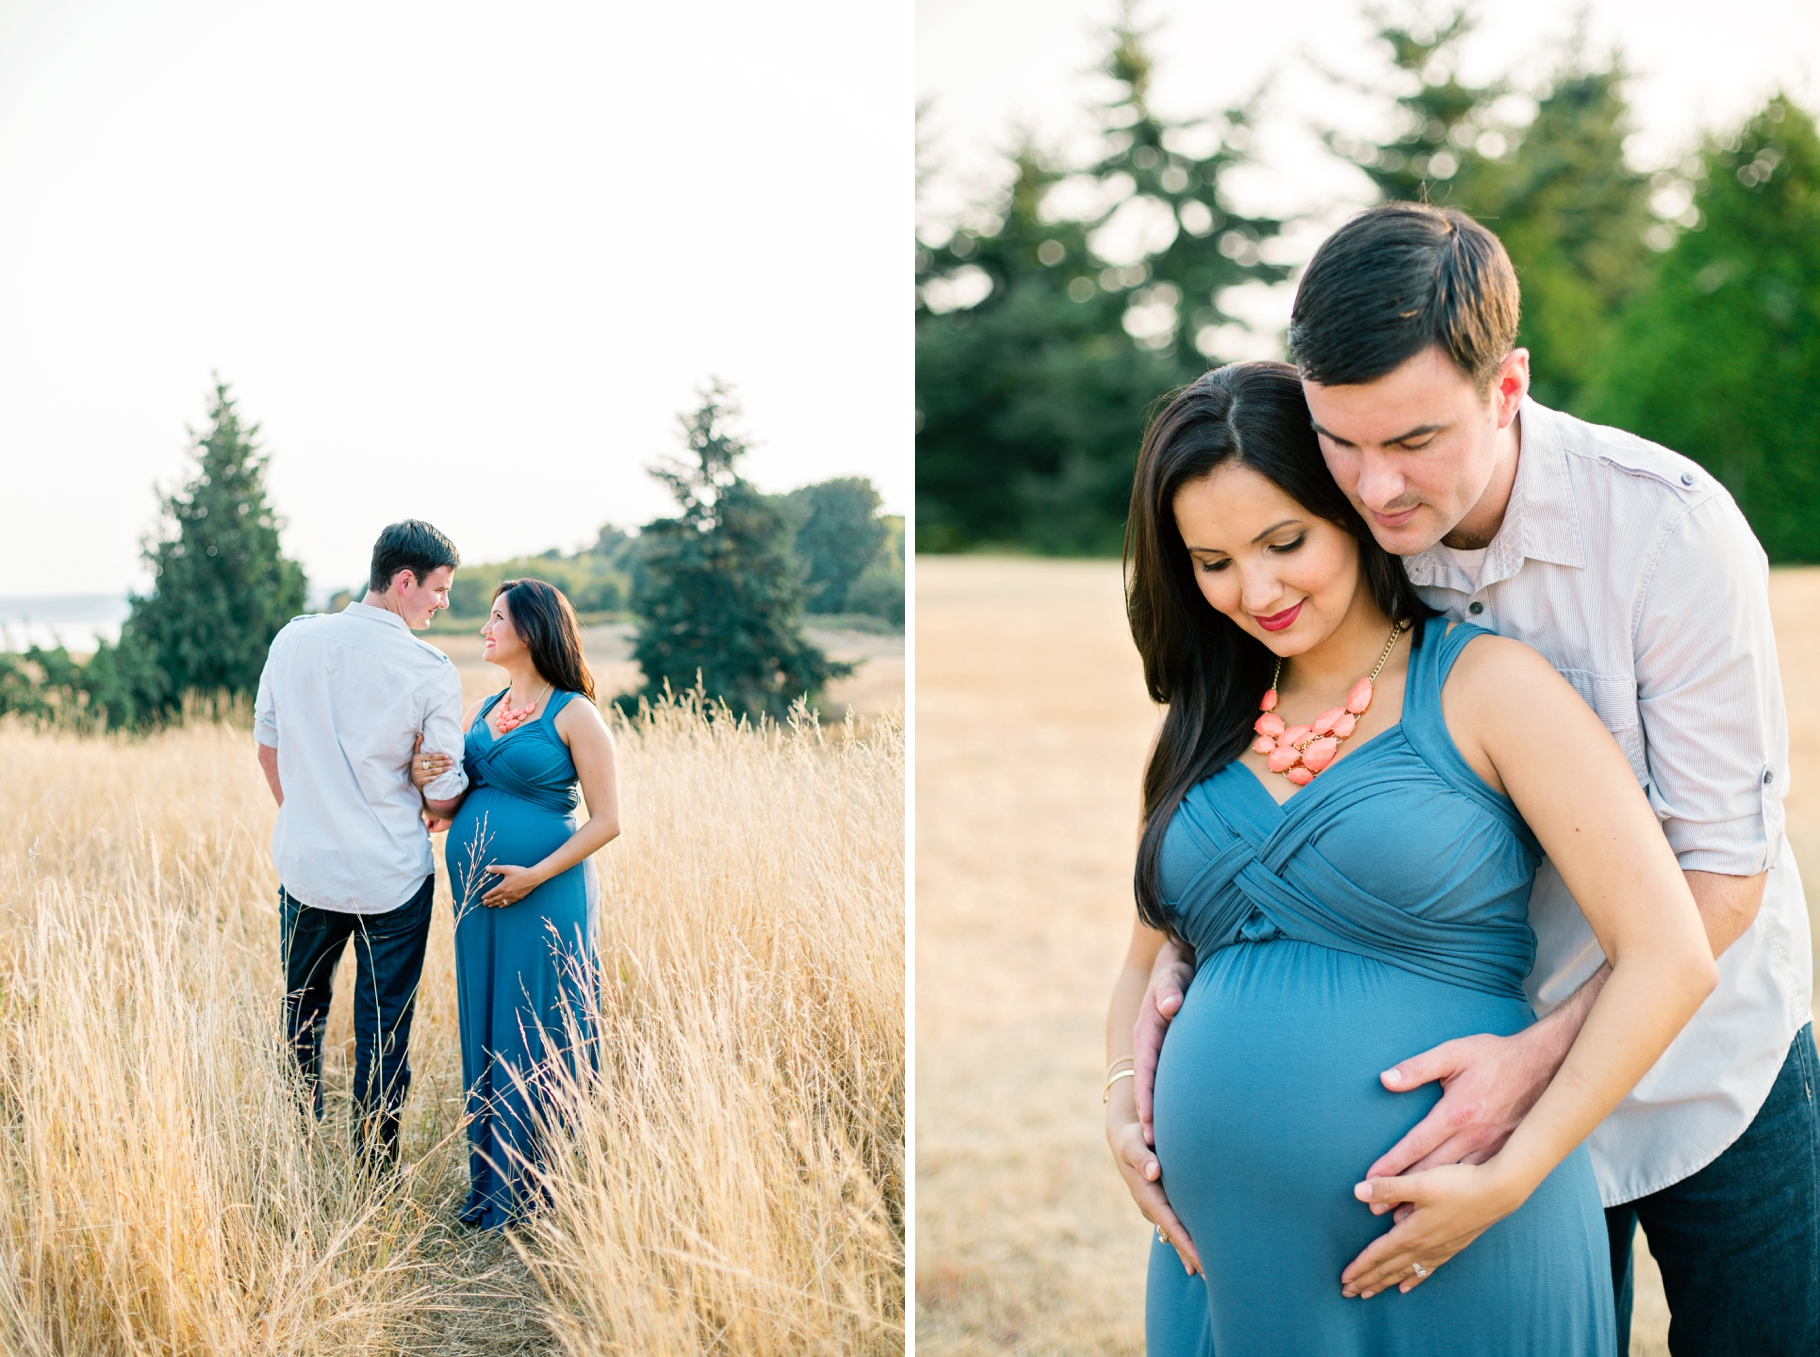 Maternity-Portraits-Photography-Discovery-Park-Seattle-Photographer_0007